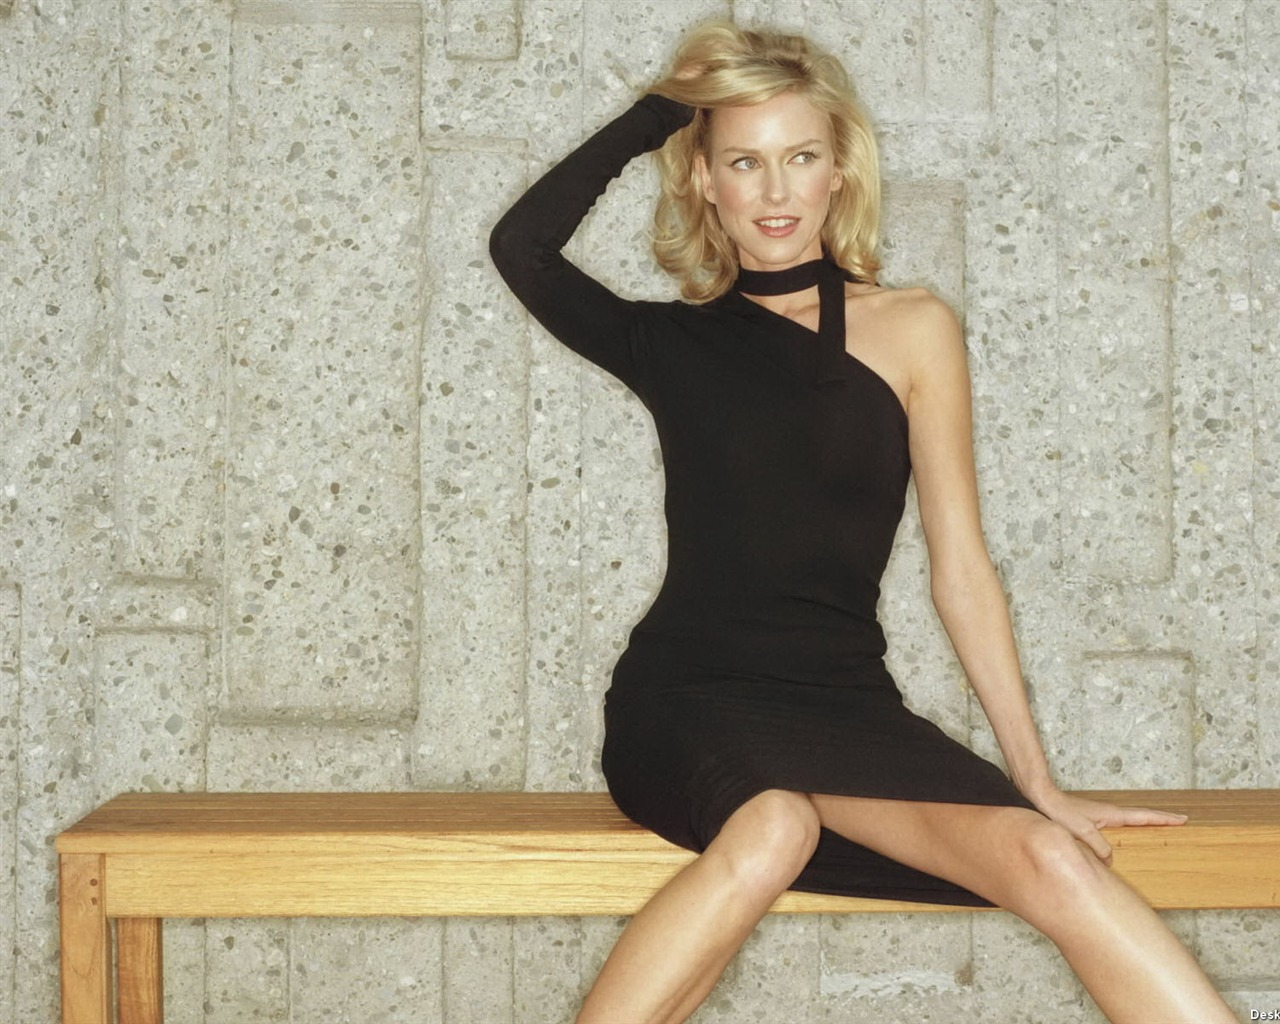 Naomi Watts #028 - 1280x1024 Wallpapers Pictures Photos Images